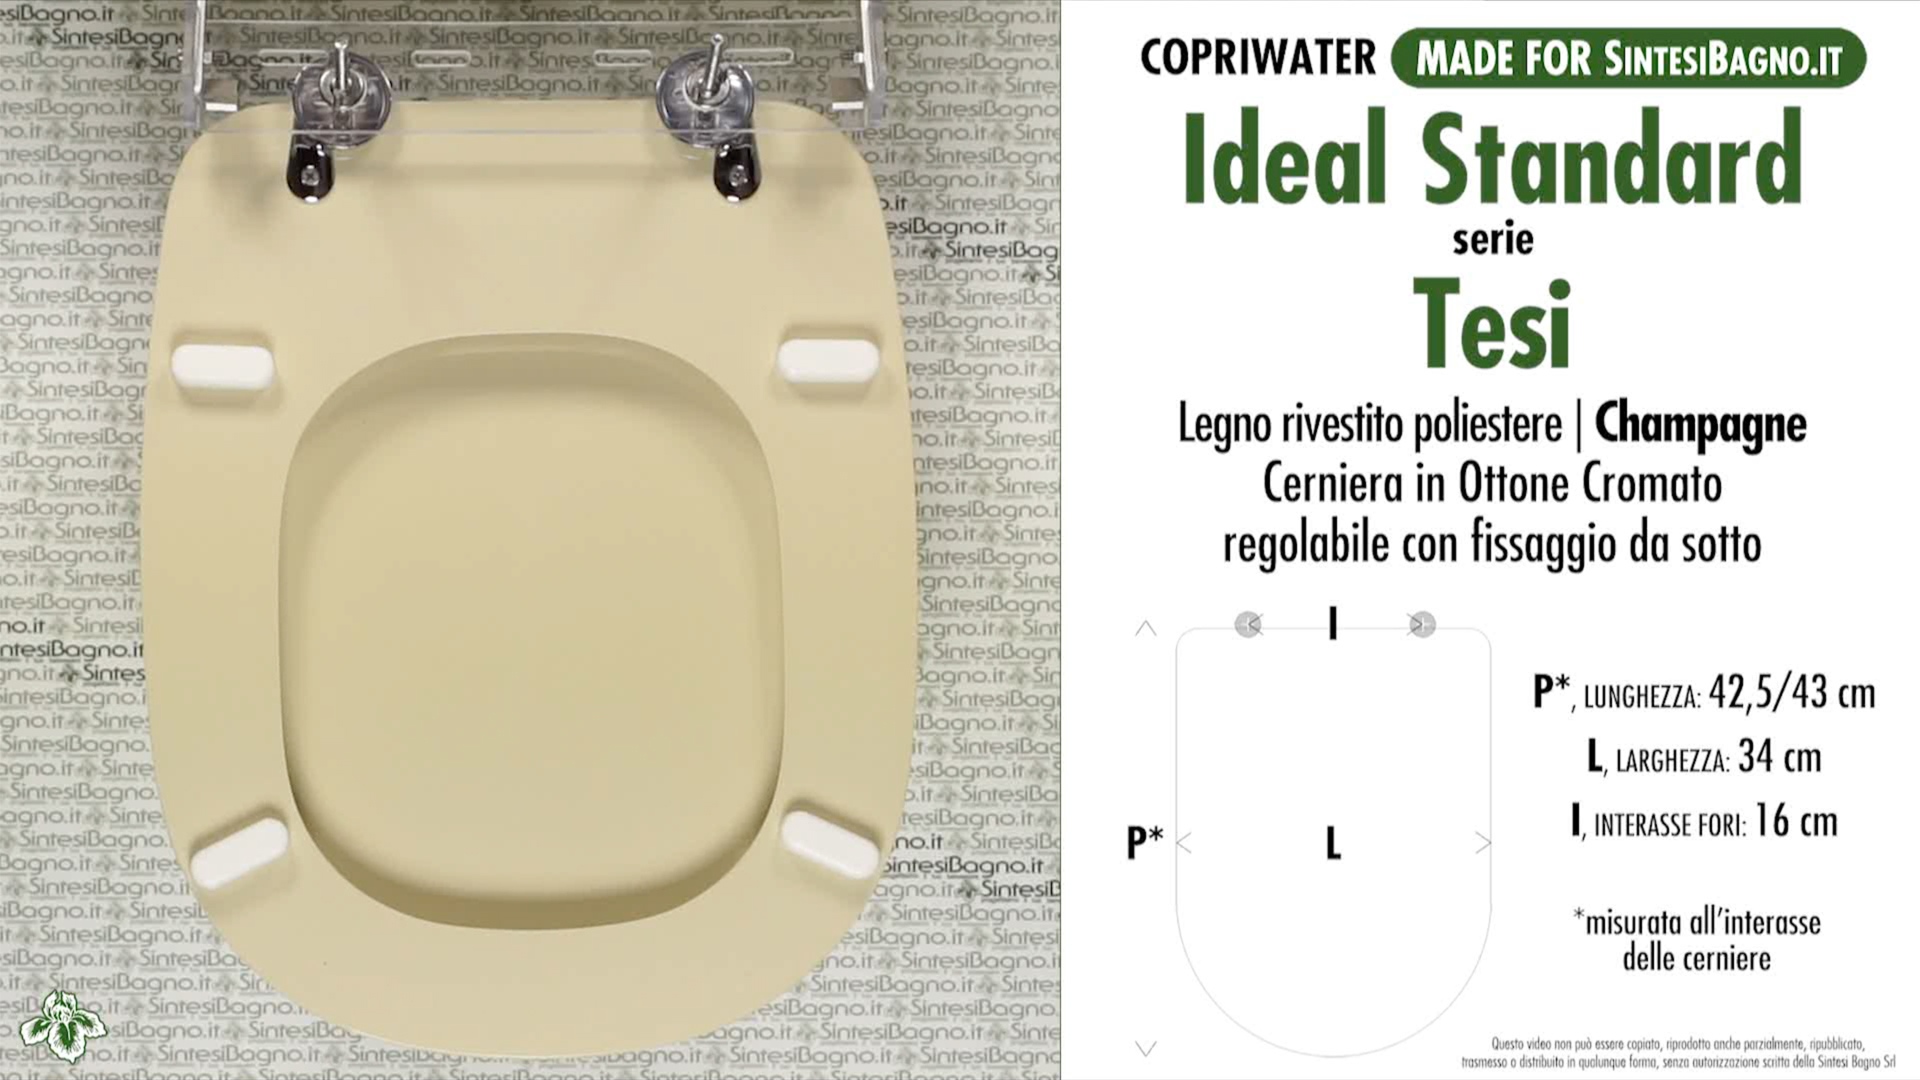 Wc Seat Made For Wc Tesi Ideal Standard Model Champagne Type Dedicated Sintesibagno Shop Online